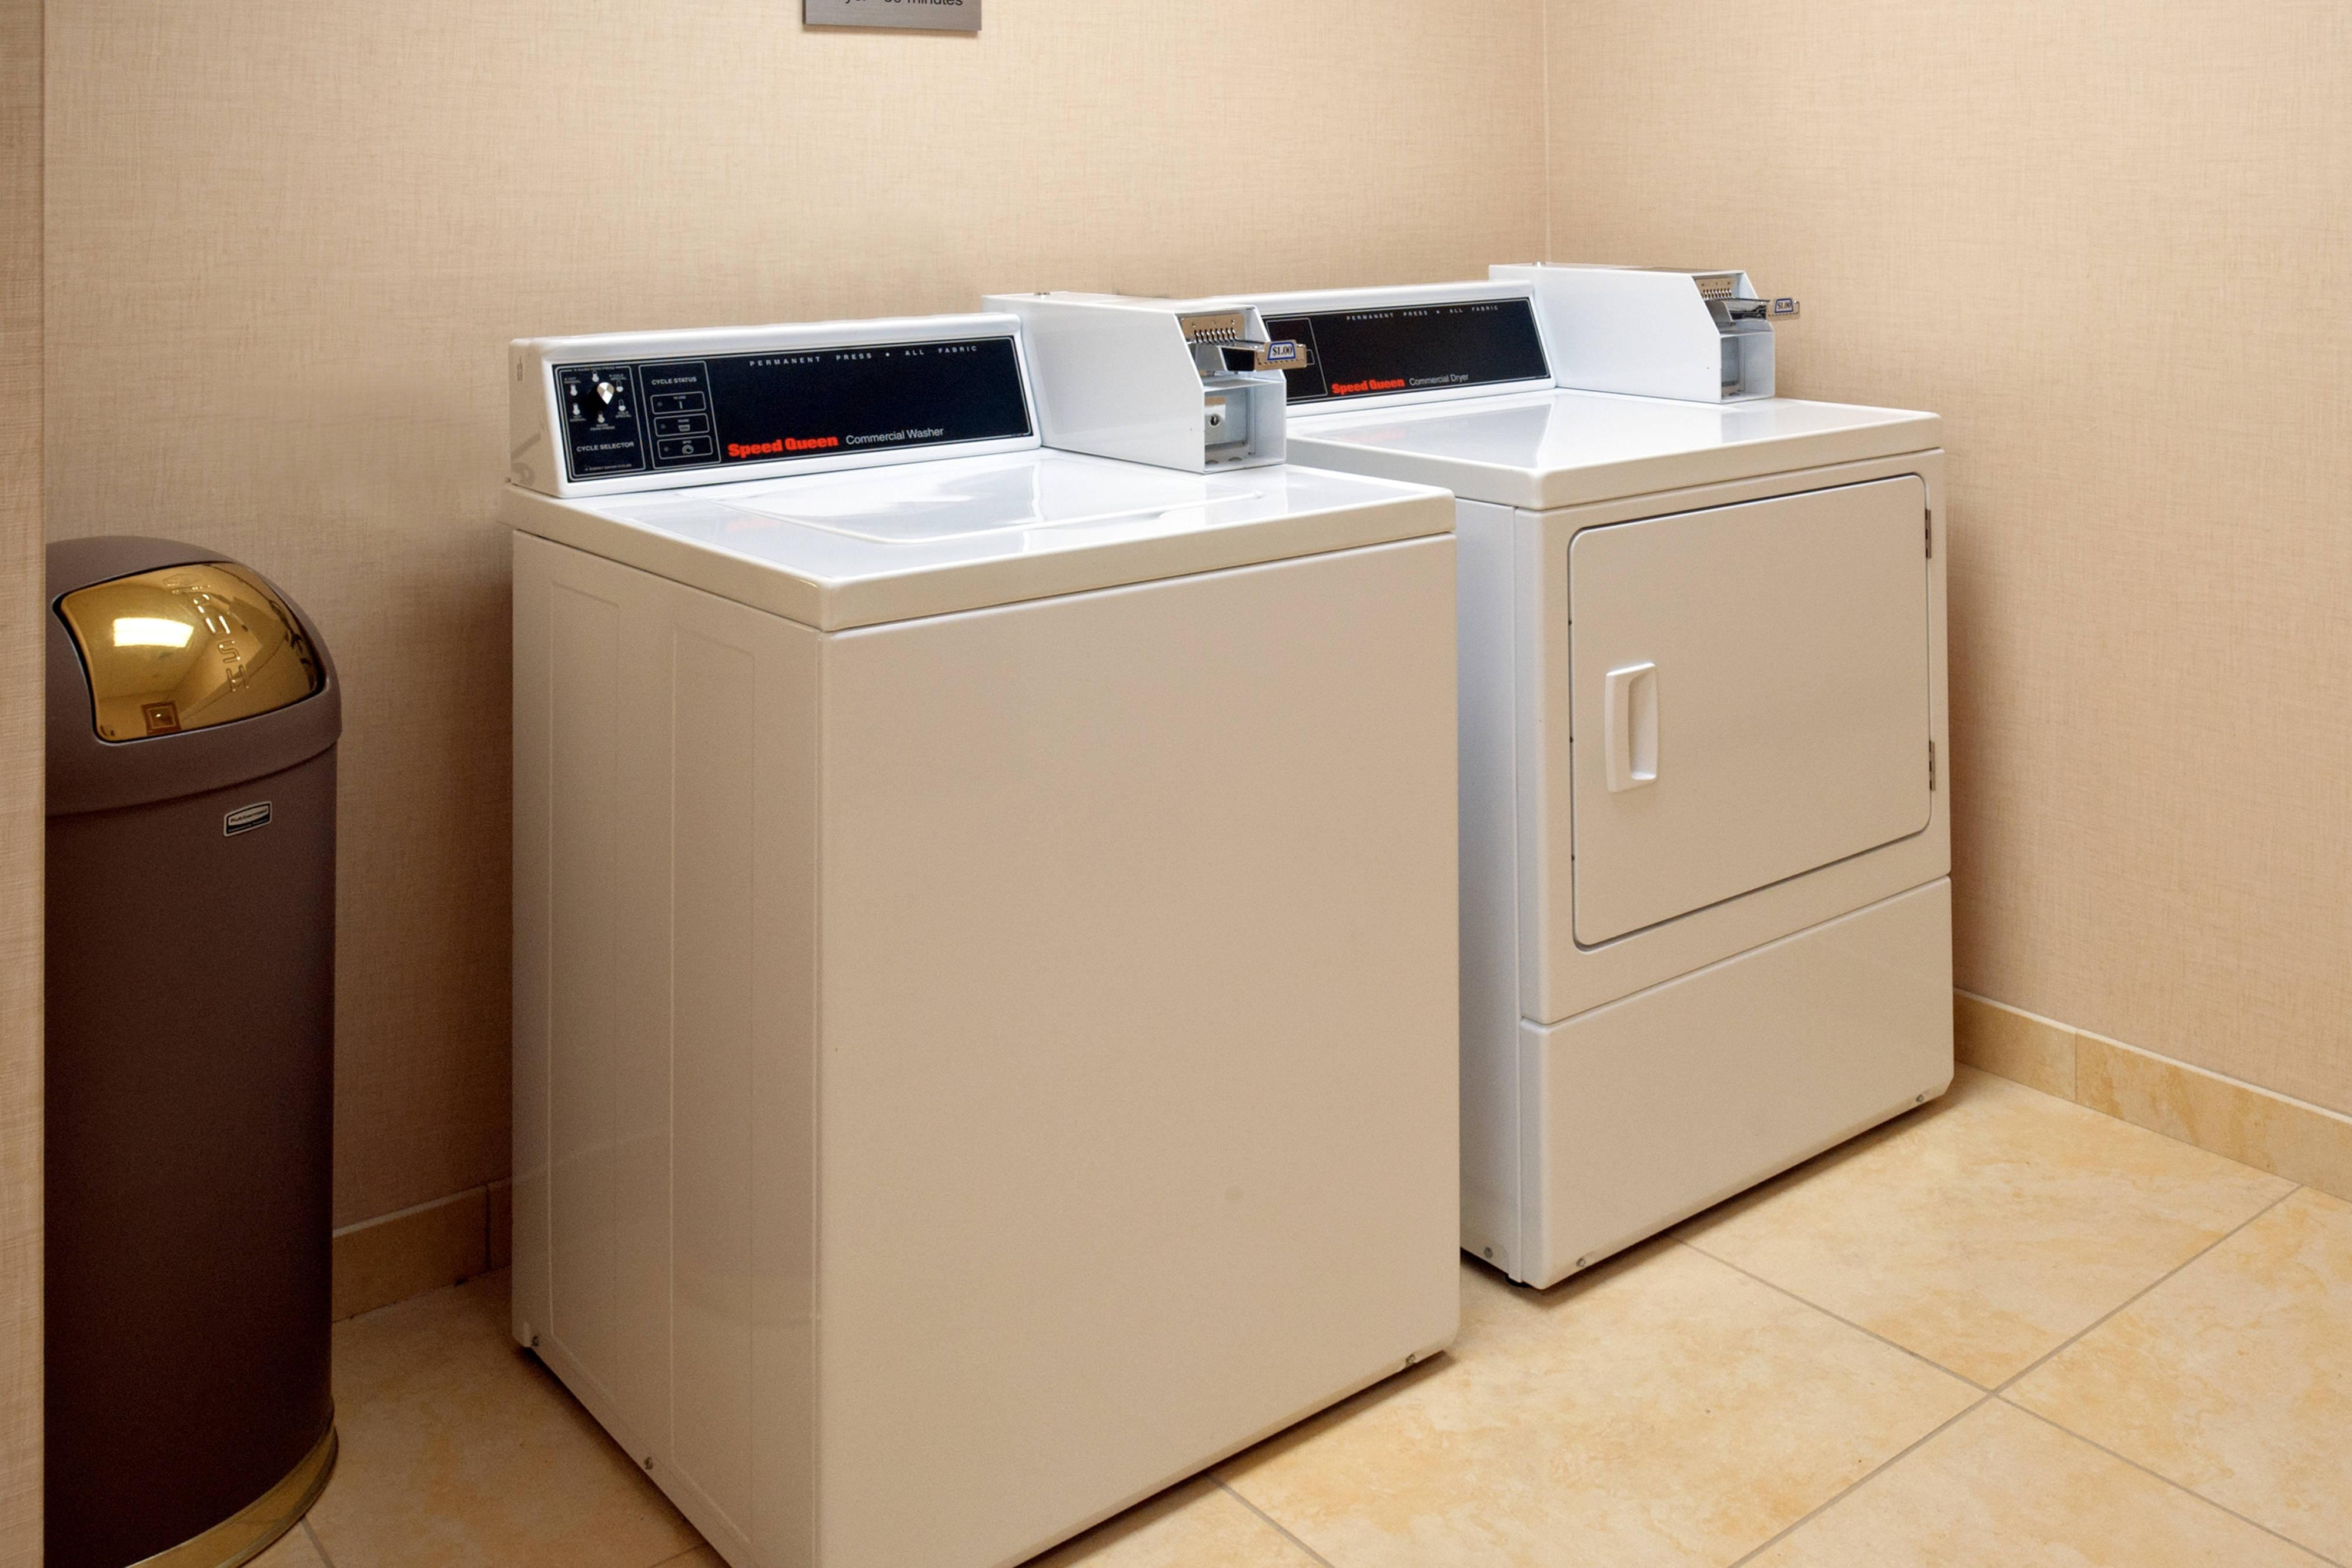 Laundry Room - Tallahassee, FL hotels